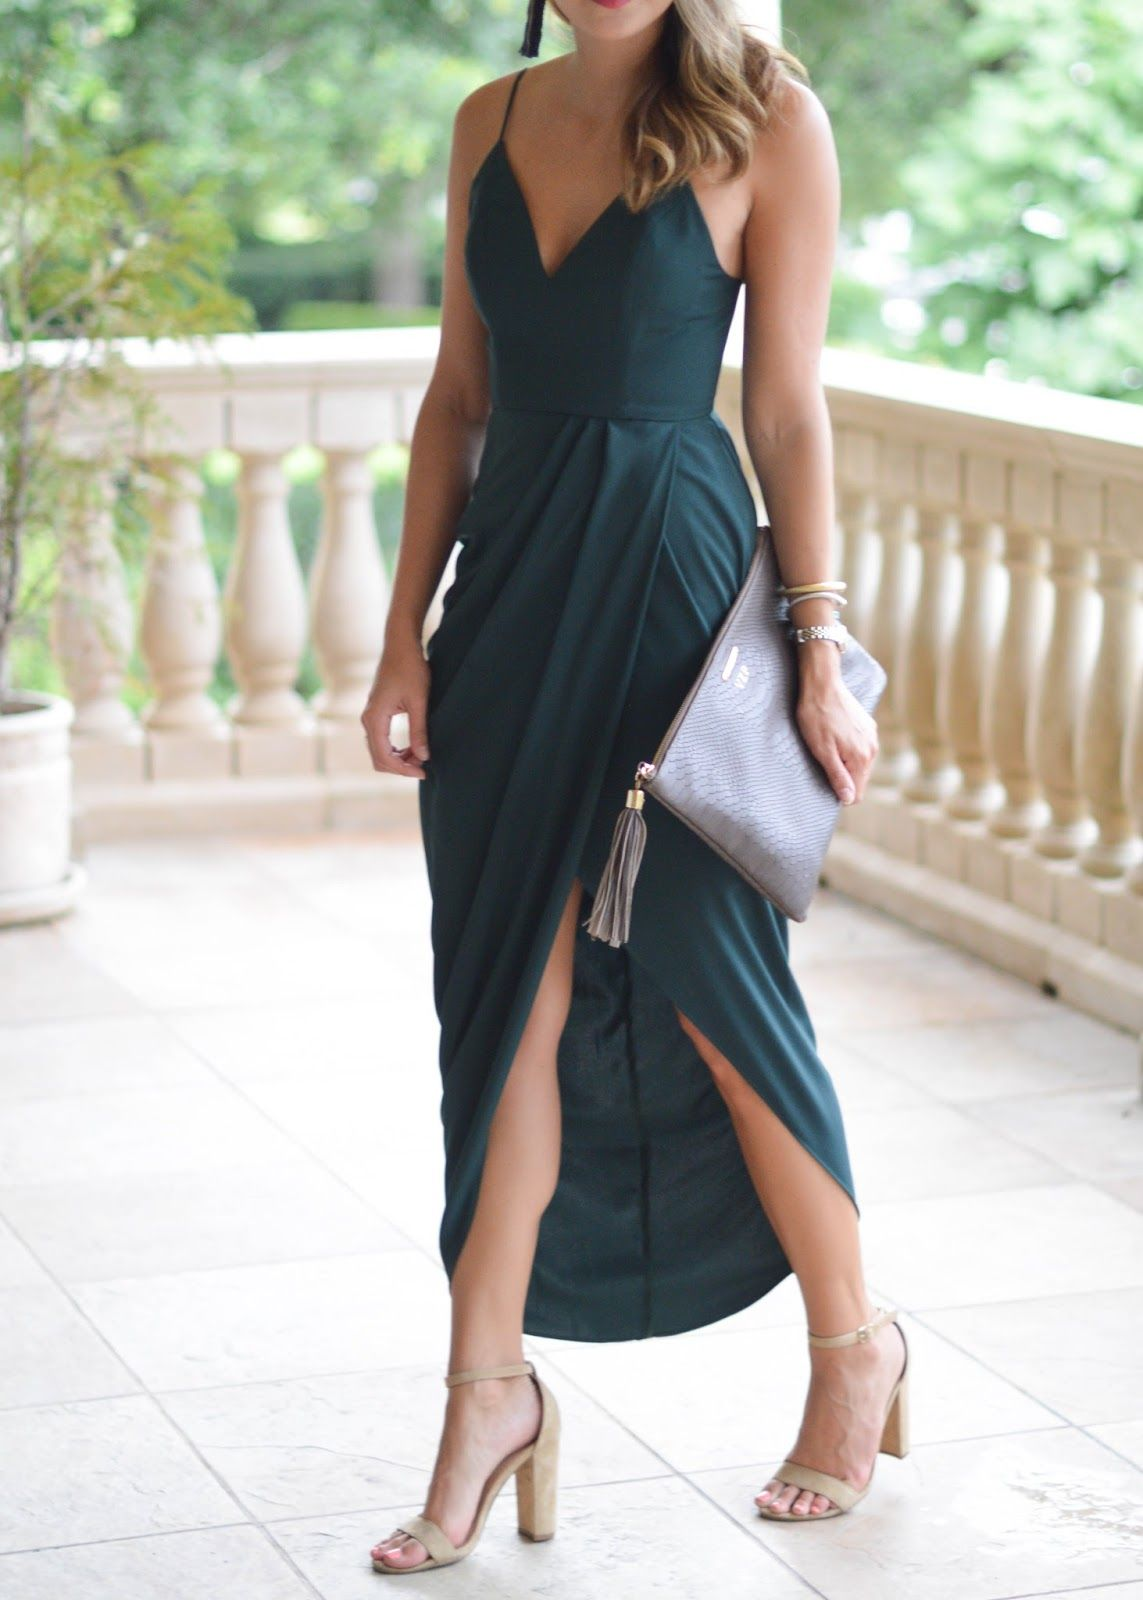 Green dress for wedding party  That One Dress  dresses  Pinterest  Wedding guest style Dress